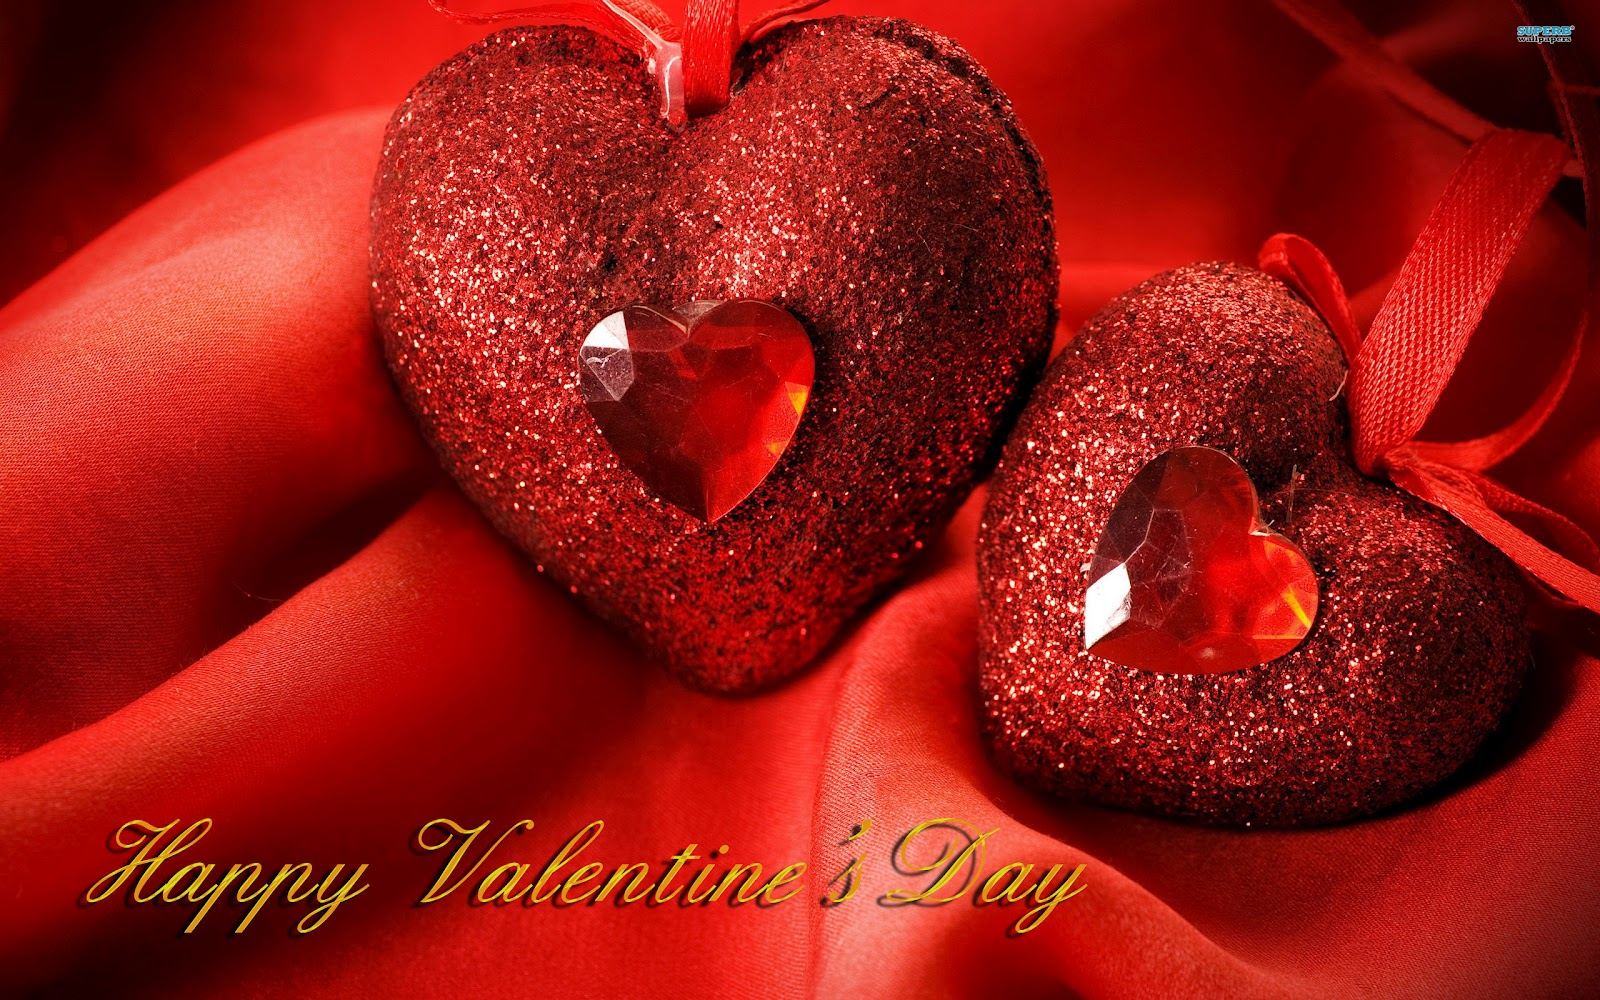 Cute Heart Wallpapers for Valentine's Day